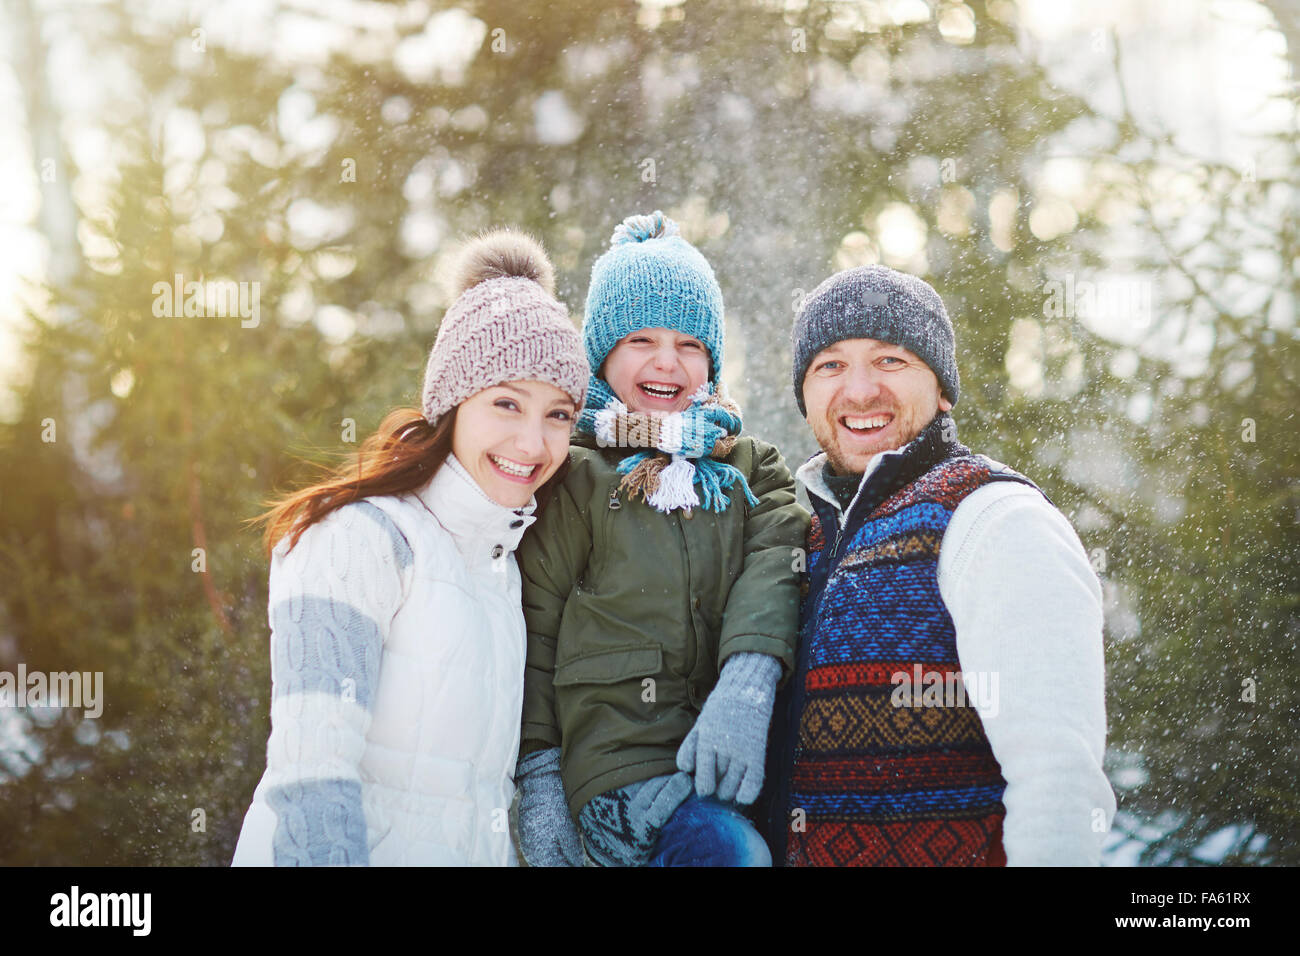 Ecstatic family enjoying time in winter park - Stock Image